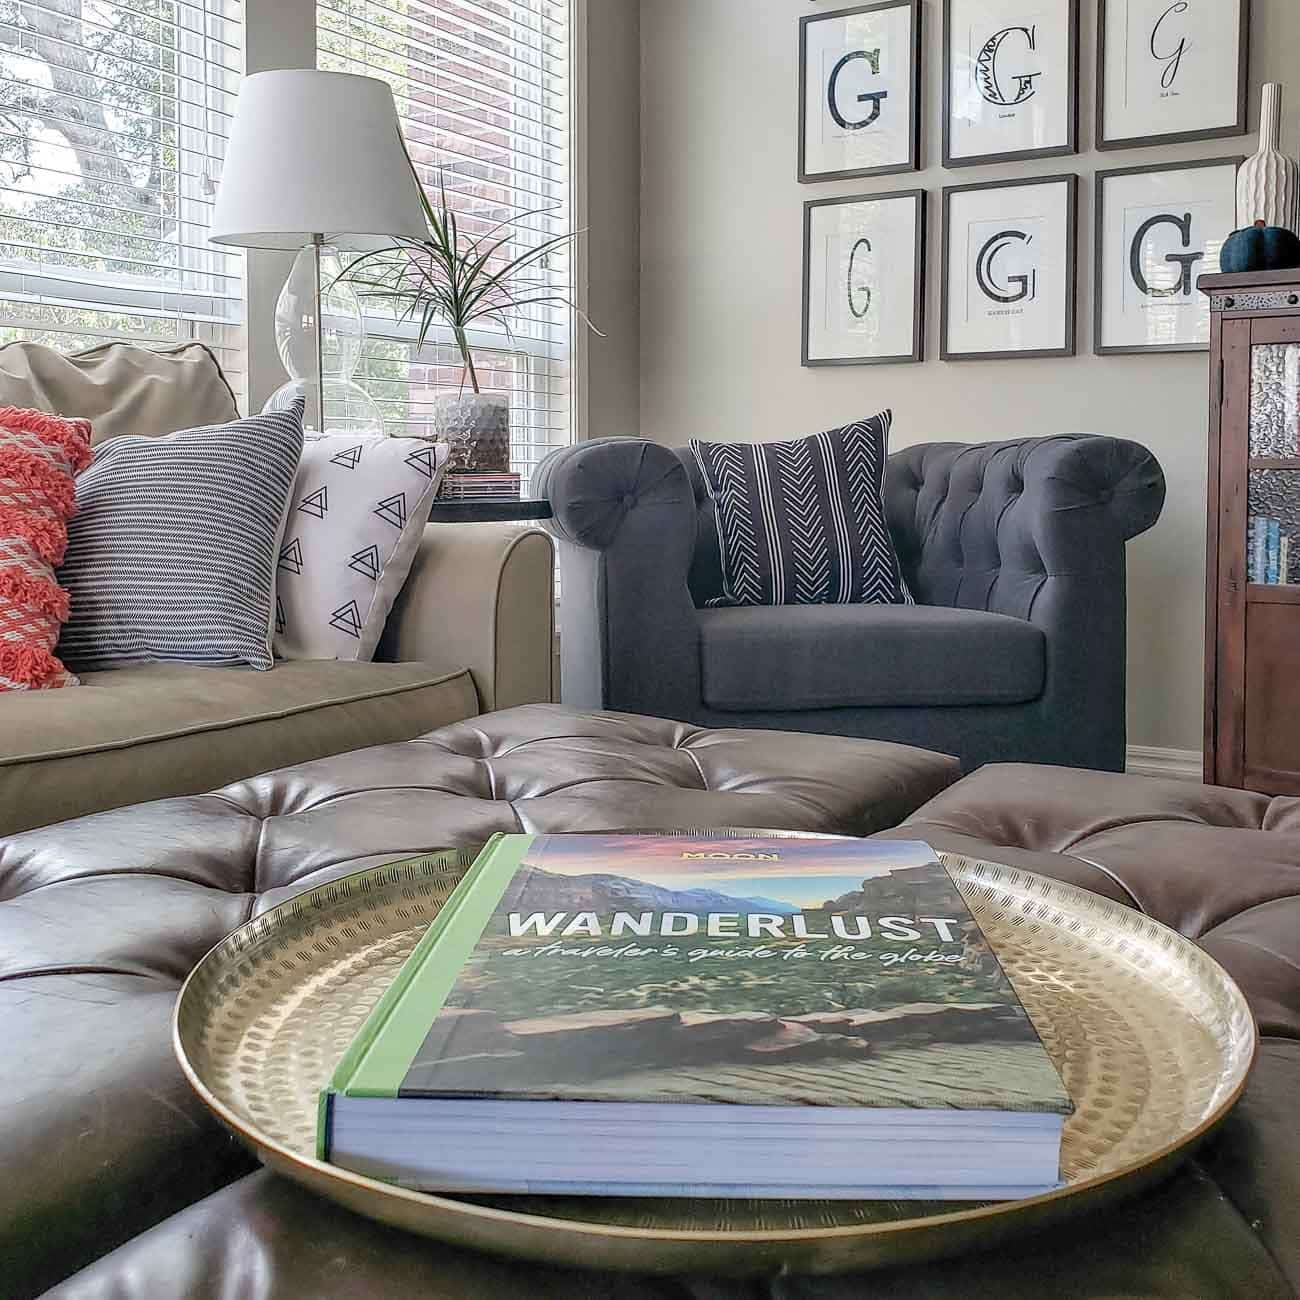 The Ultimate Coffee Table Book Gift Guide Polished Habitat